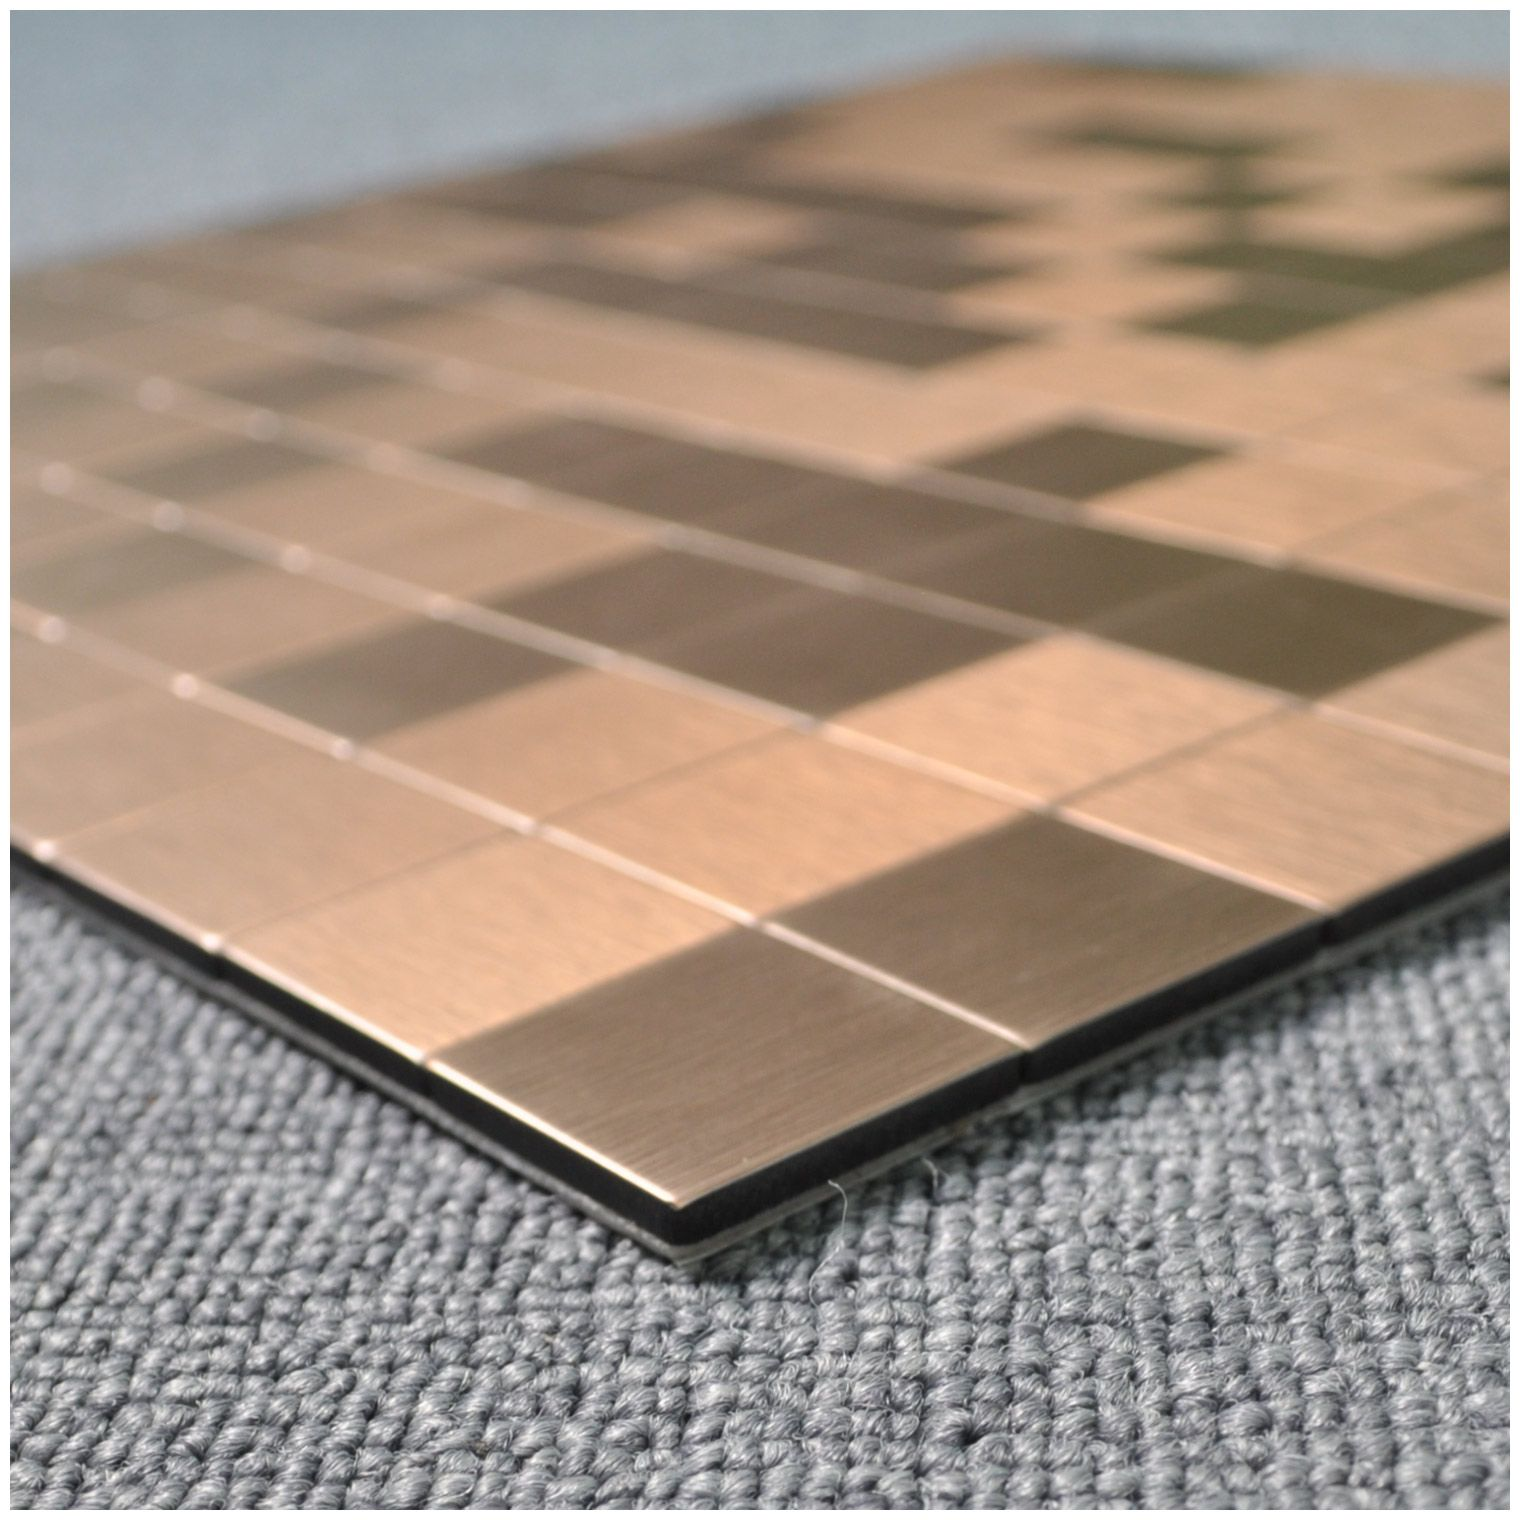 Easy DIY peel & stick metal mosaic tile is made of an adhesive substrate topped with an aluminum posite panel which is now leading a new revolution of